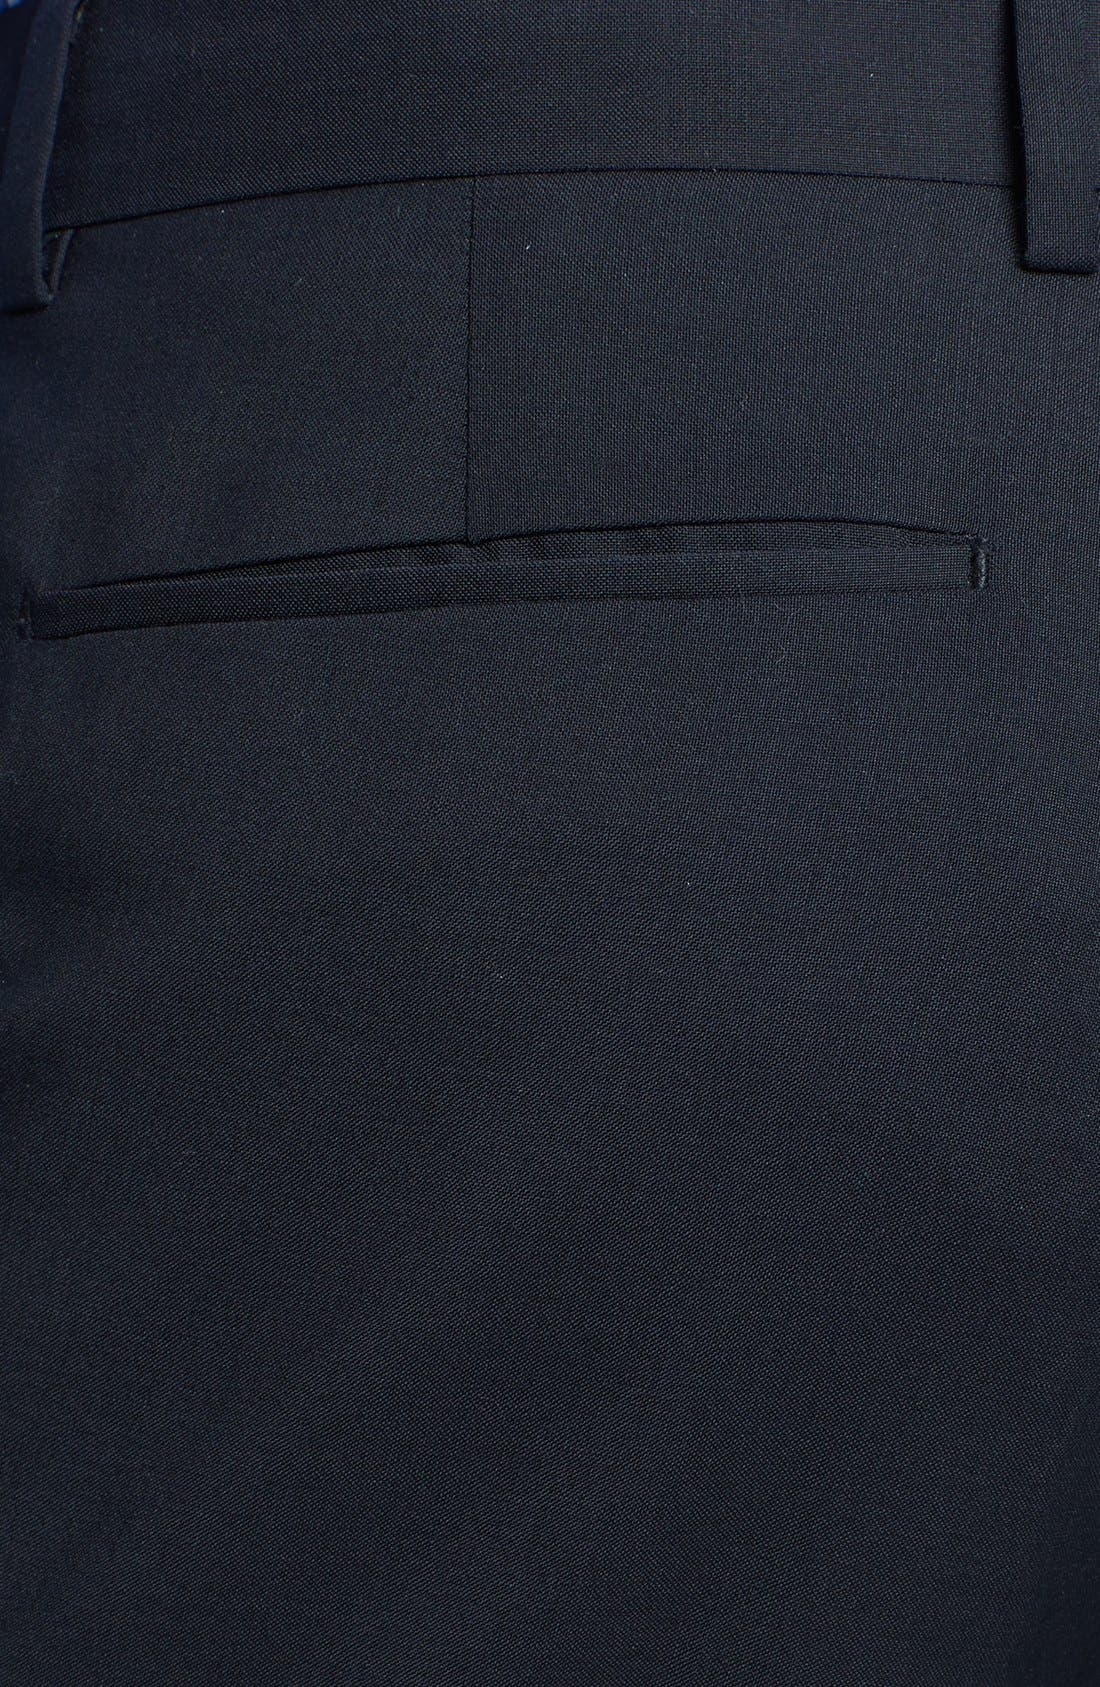 Alternate Image 3  - PS Paul Smith Slim Fit Wool Trousers